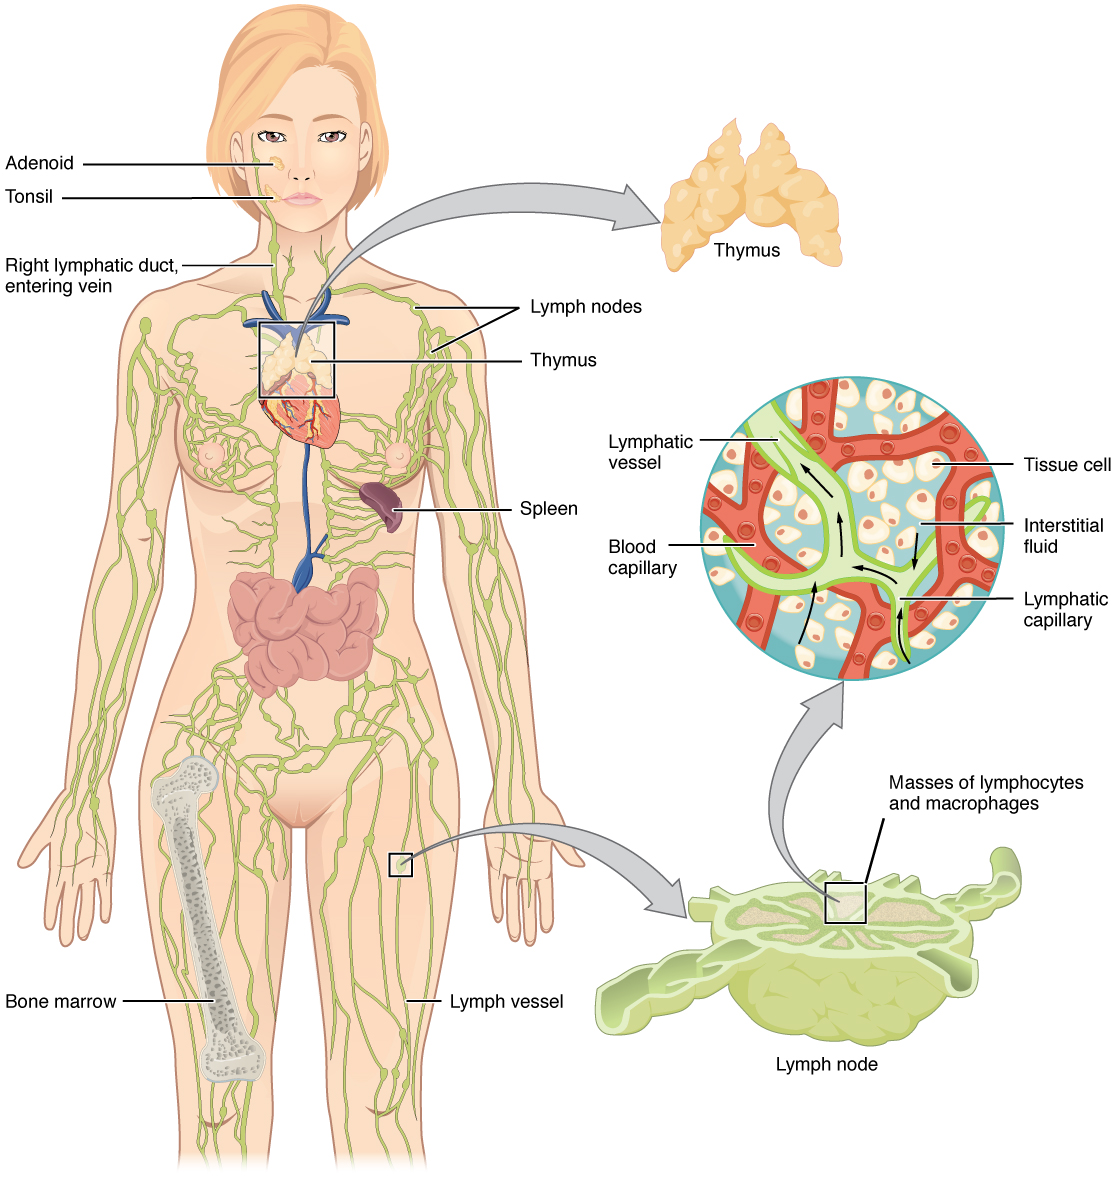 Workbooks lymphatic system worksheets : Anatomy of the Lymphatic and Immune Systems · Anatomy and Physiology